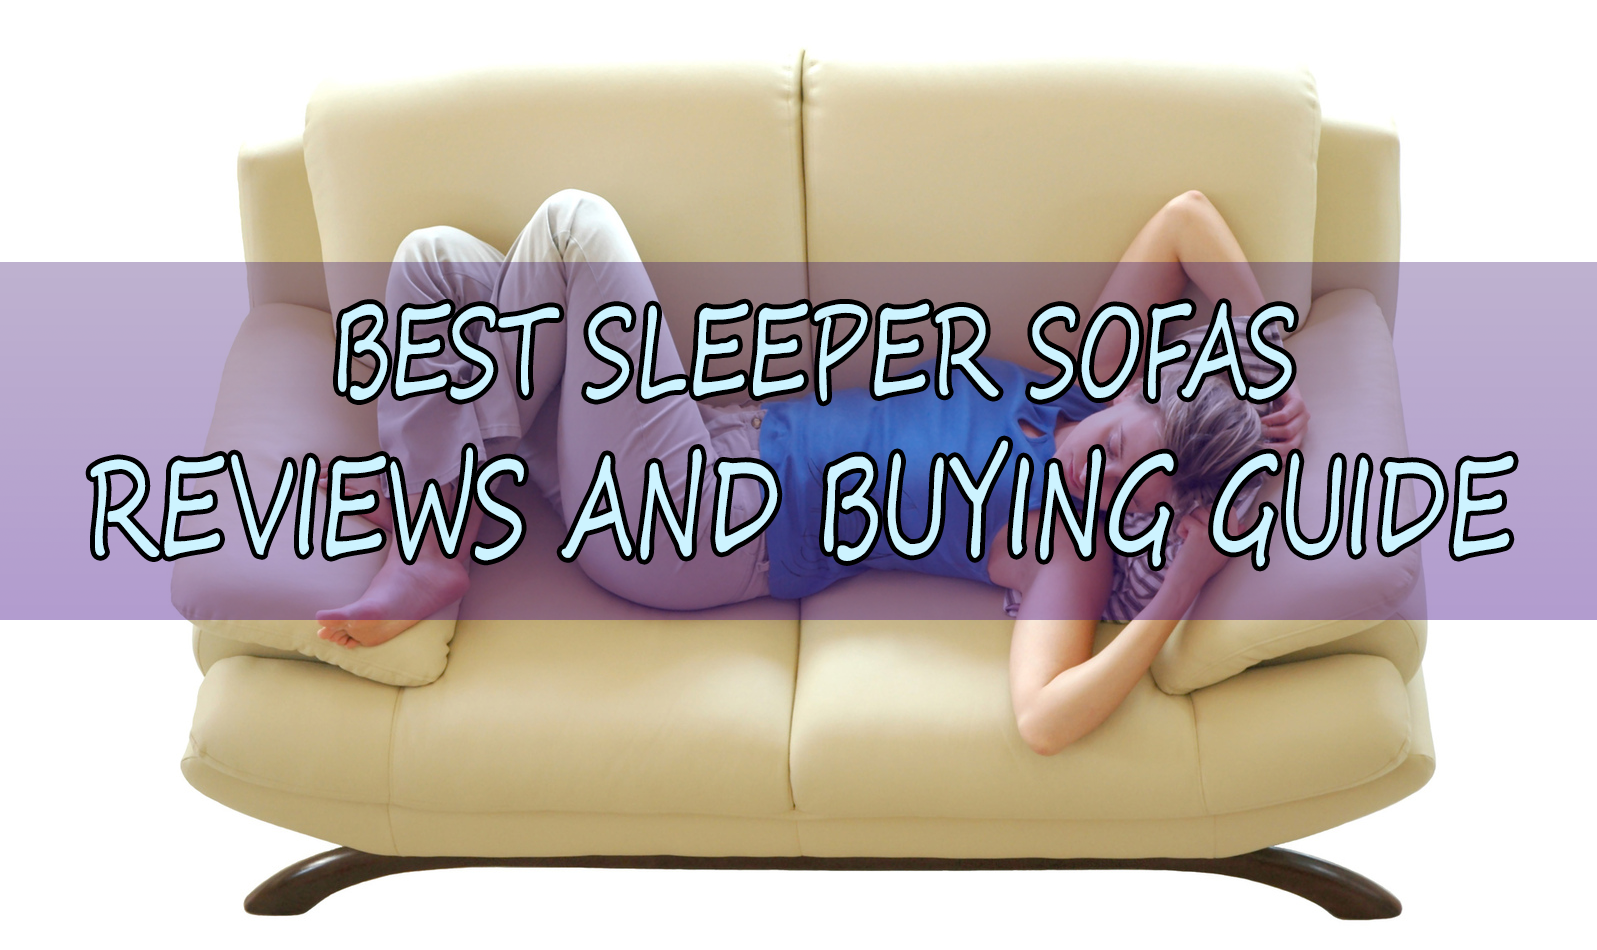 10 Best Sleeper Sofa & Most Comfortable Sofa Bed Reviews in 2018